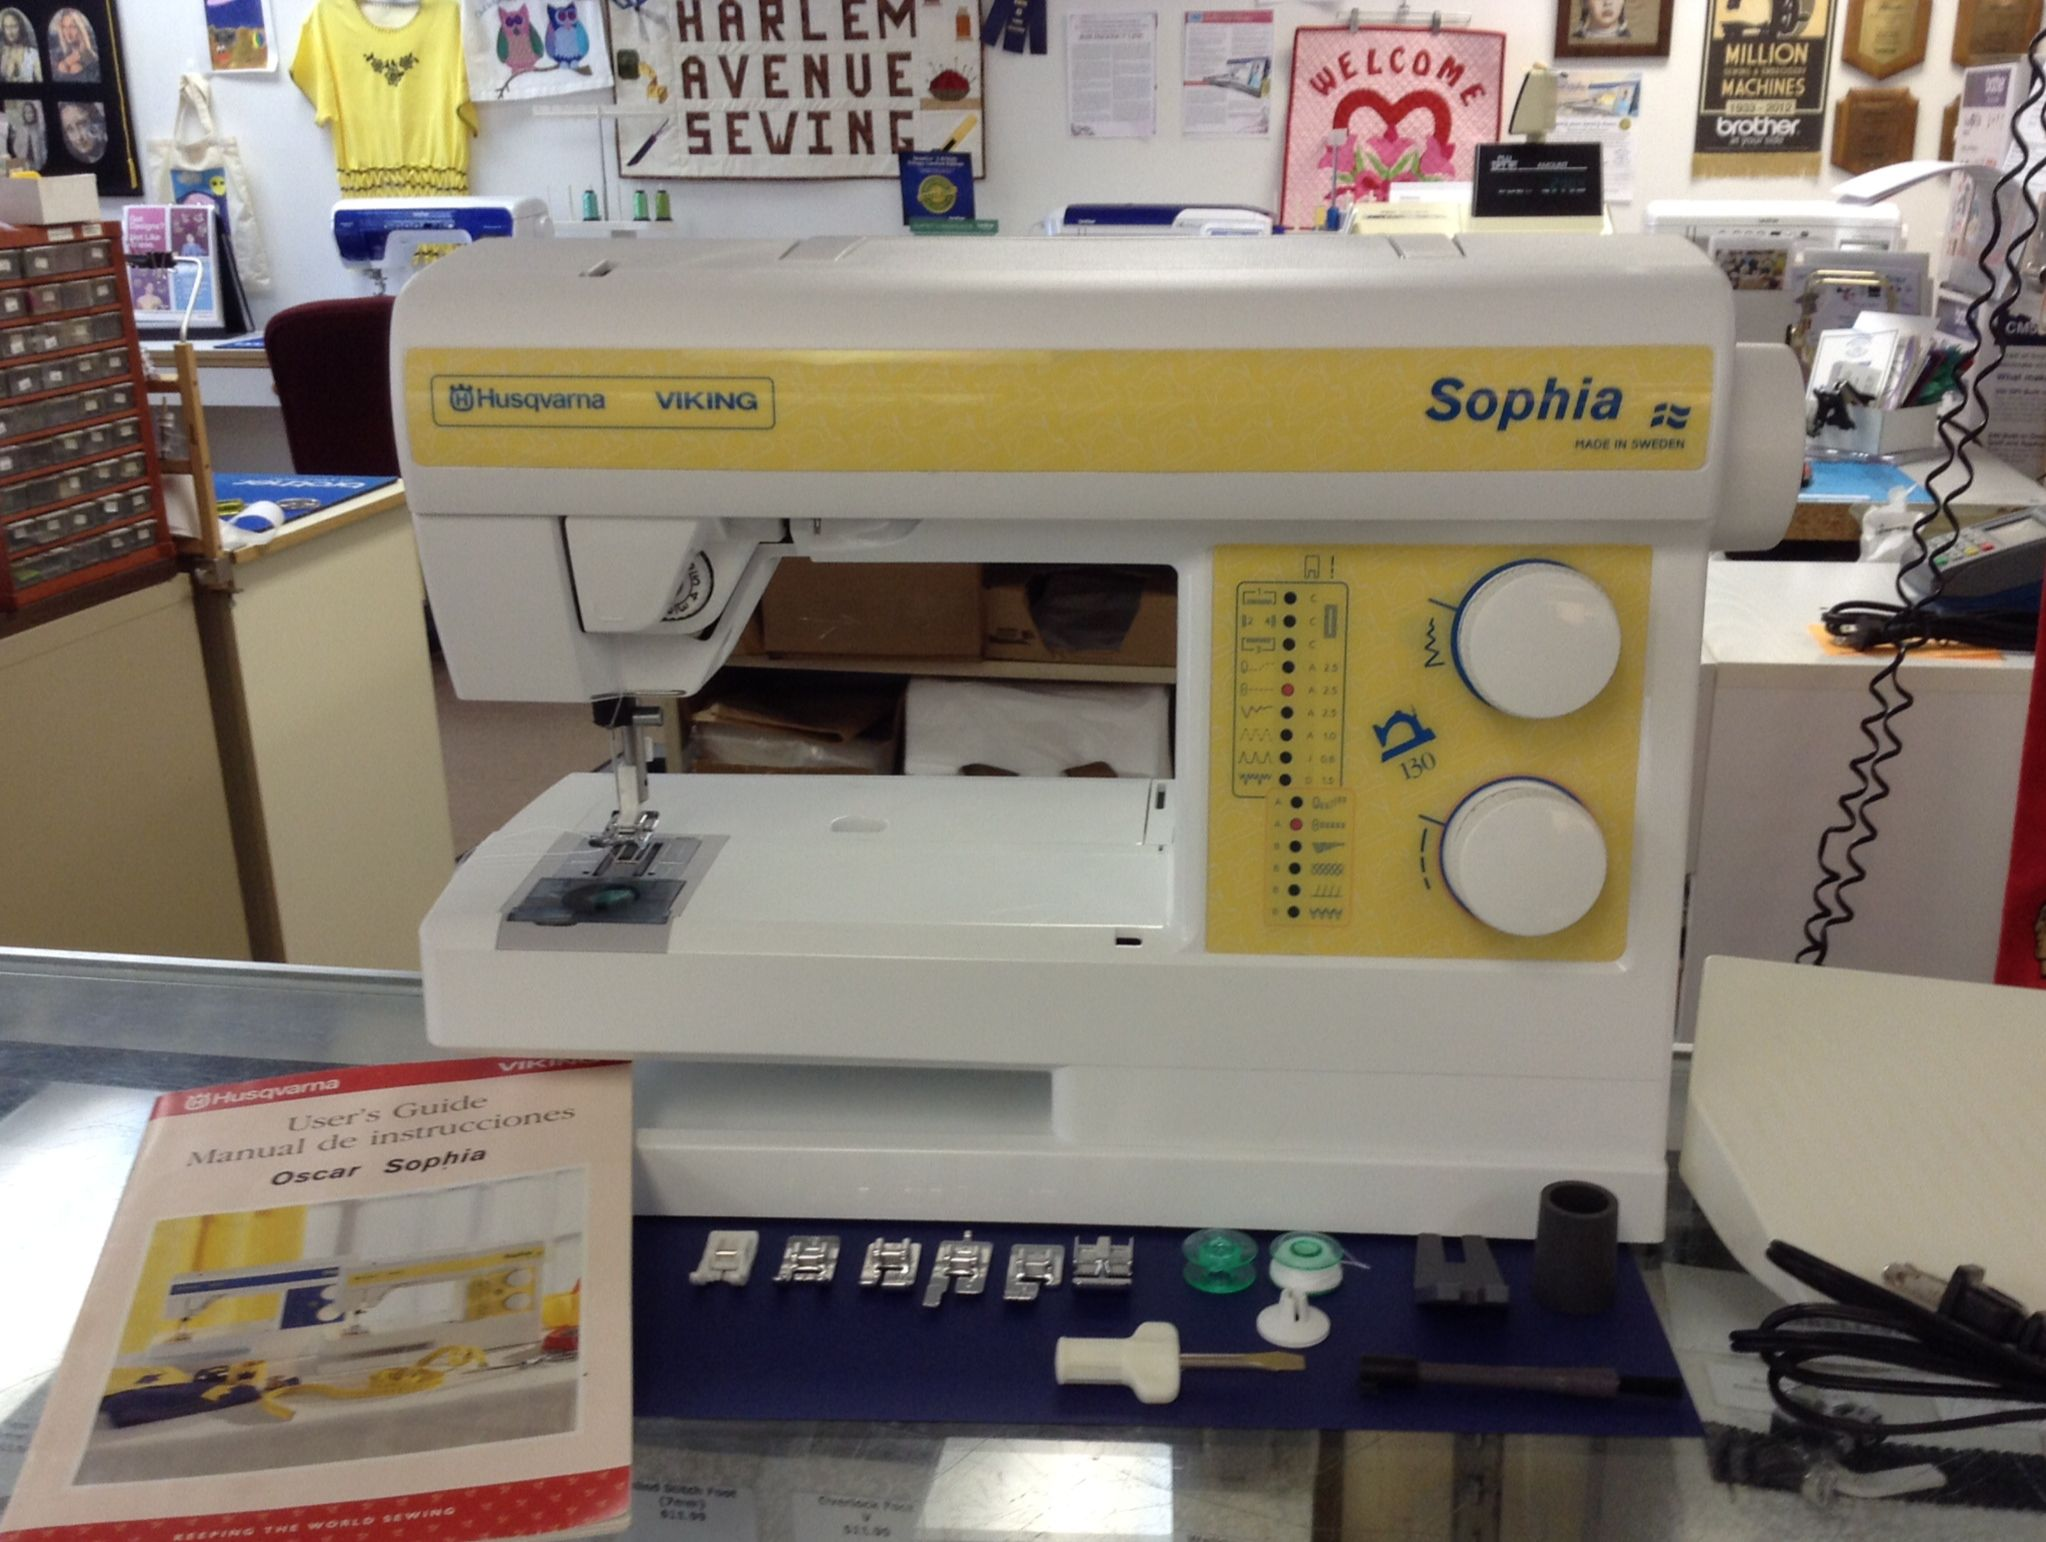 Viking Sophia Sewing Machine - made in Sweden, only $129.00